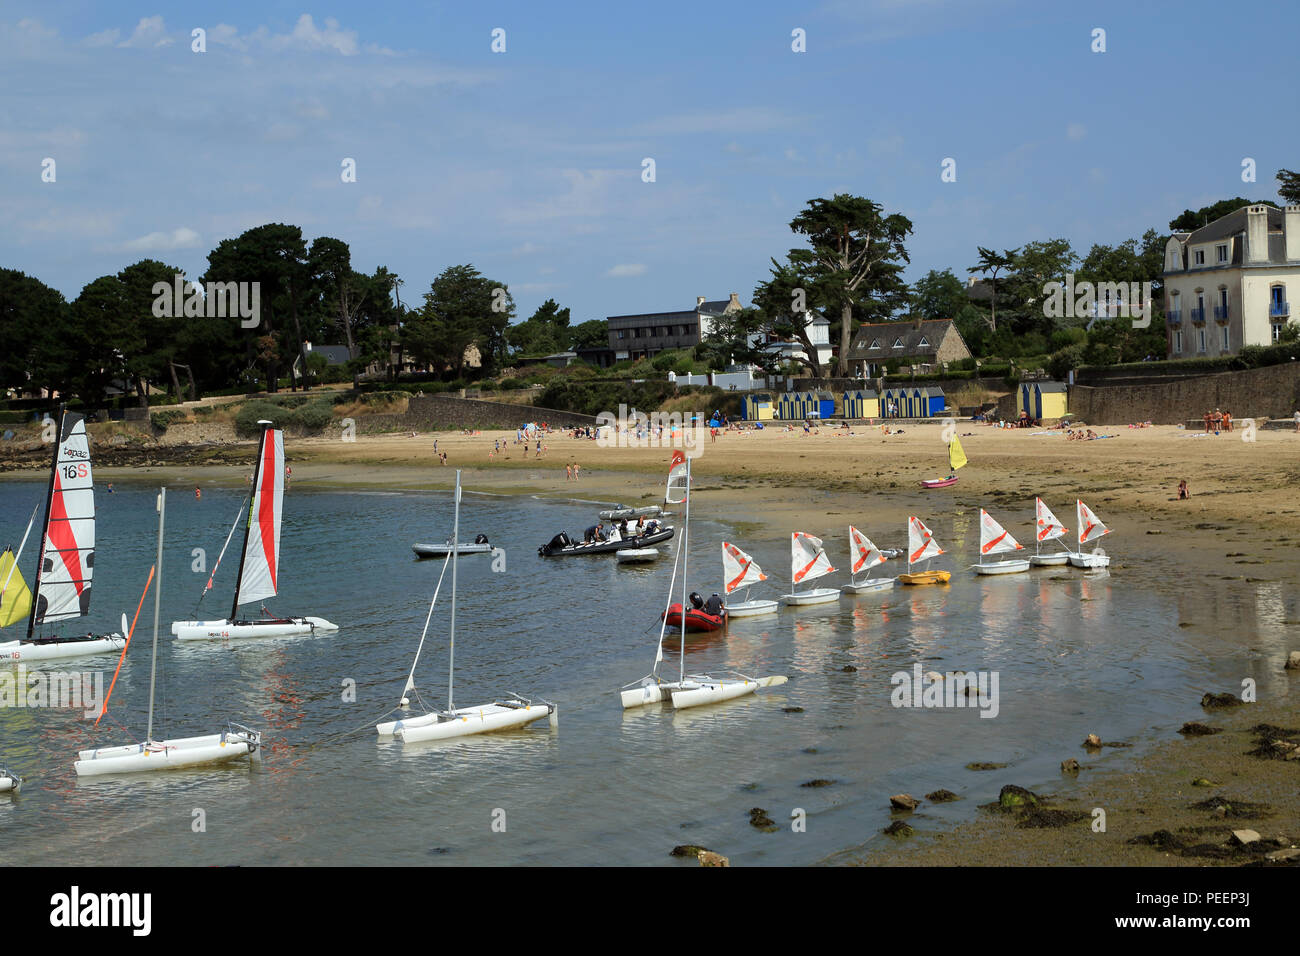 View of Grande Plage from Mane Rinville, Ile aux Moines, Morbihan, Brittany, France - Stock Image